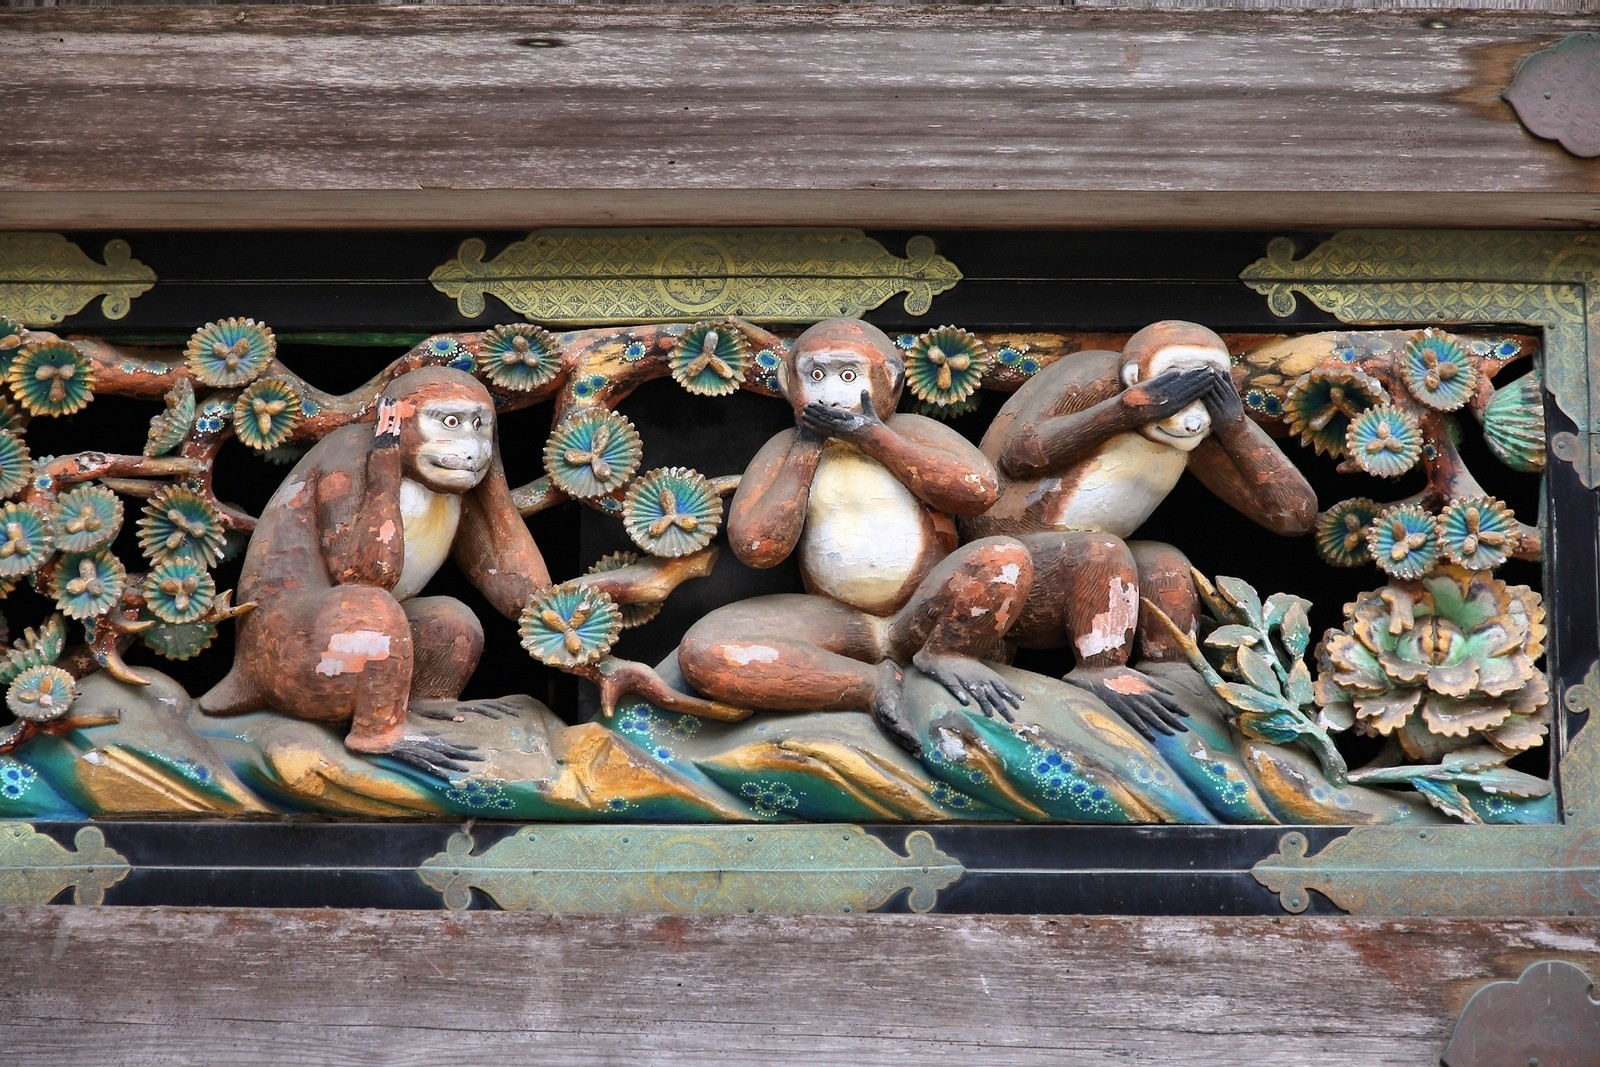 Wise Monkeys in Nikko, Japan